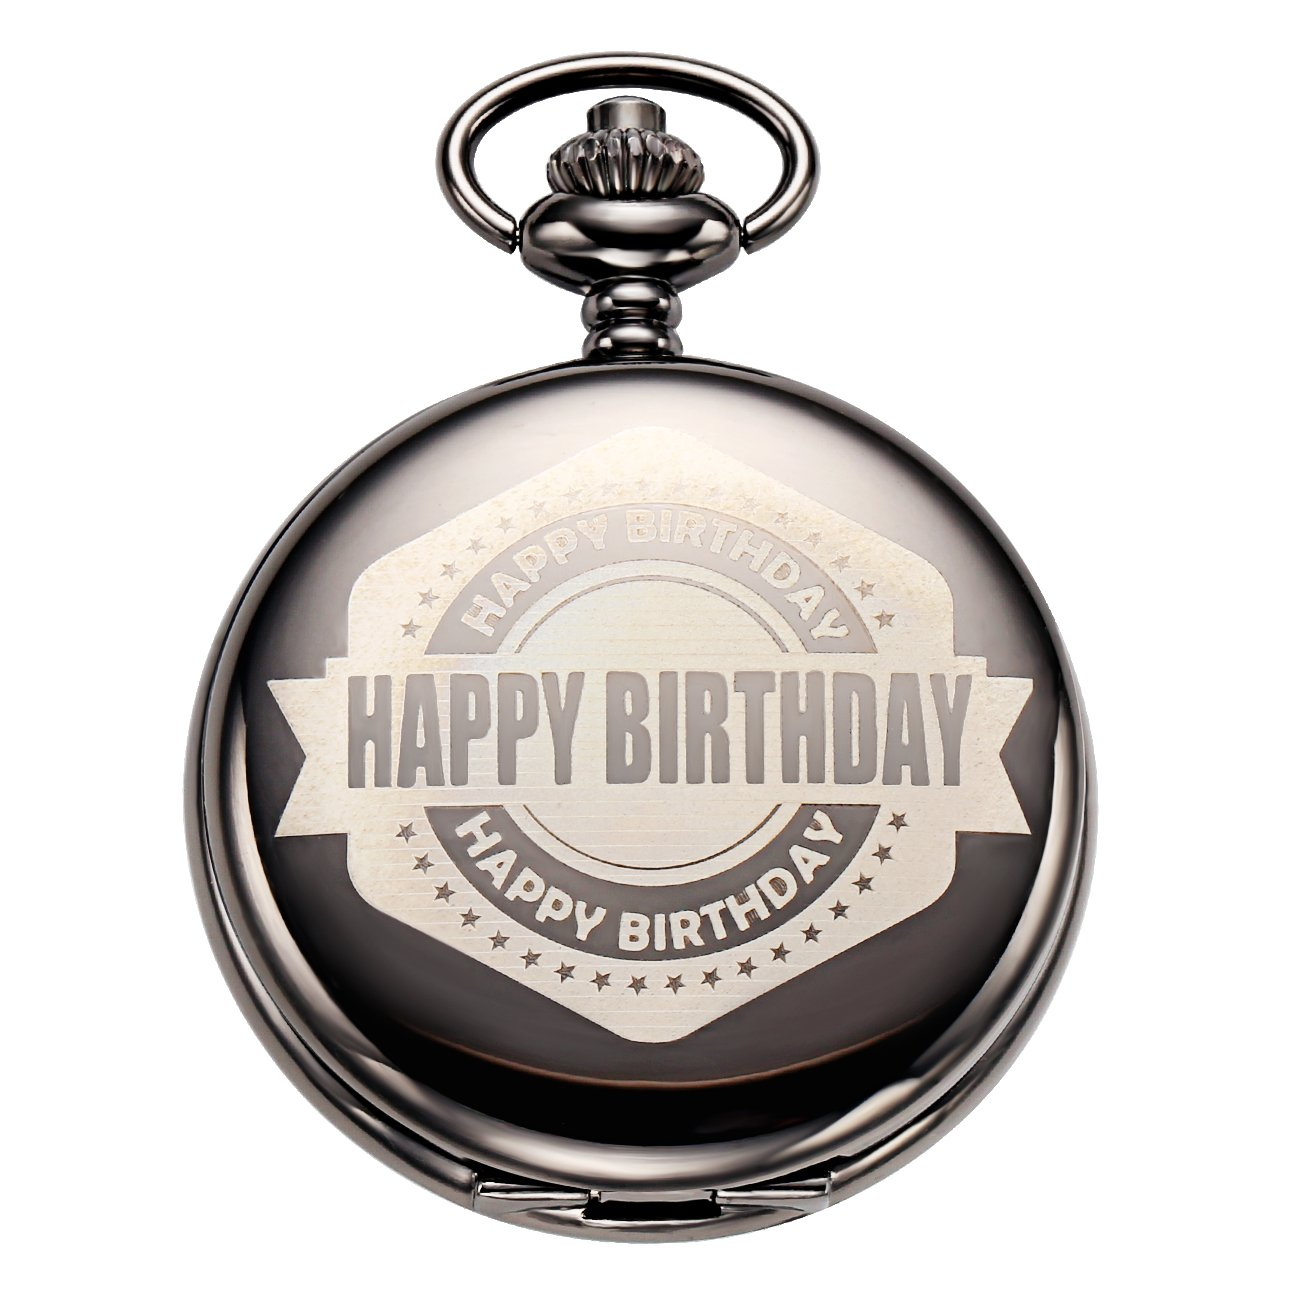 Happy Birthday Gifts Pocket Watches With Chain for Women Wife Son Mom,Dad Husband Daughter